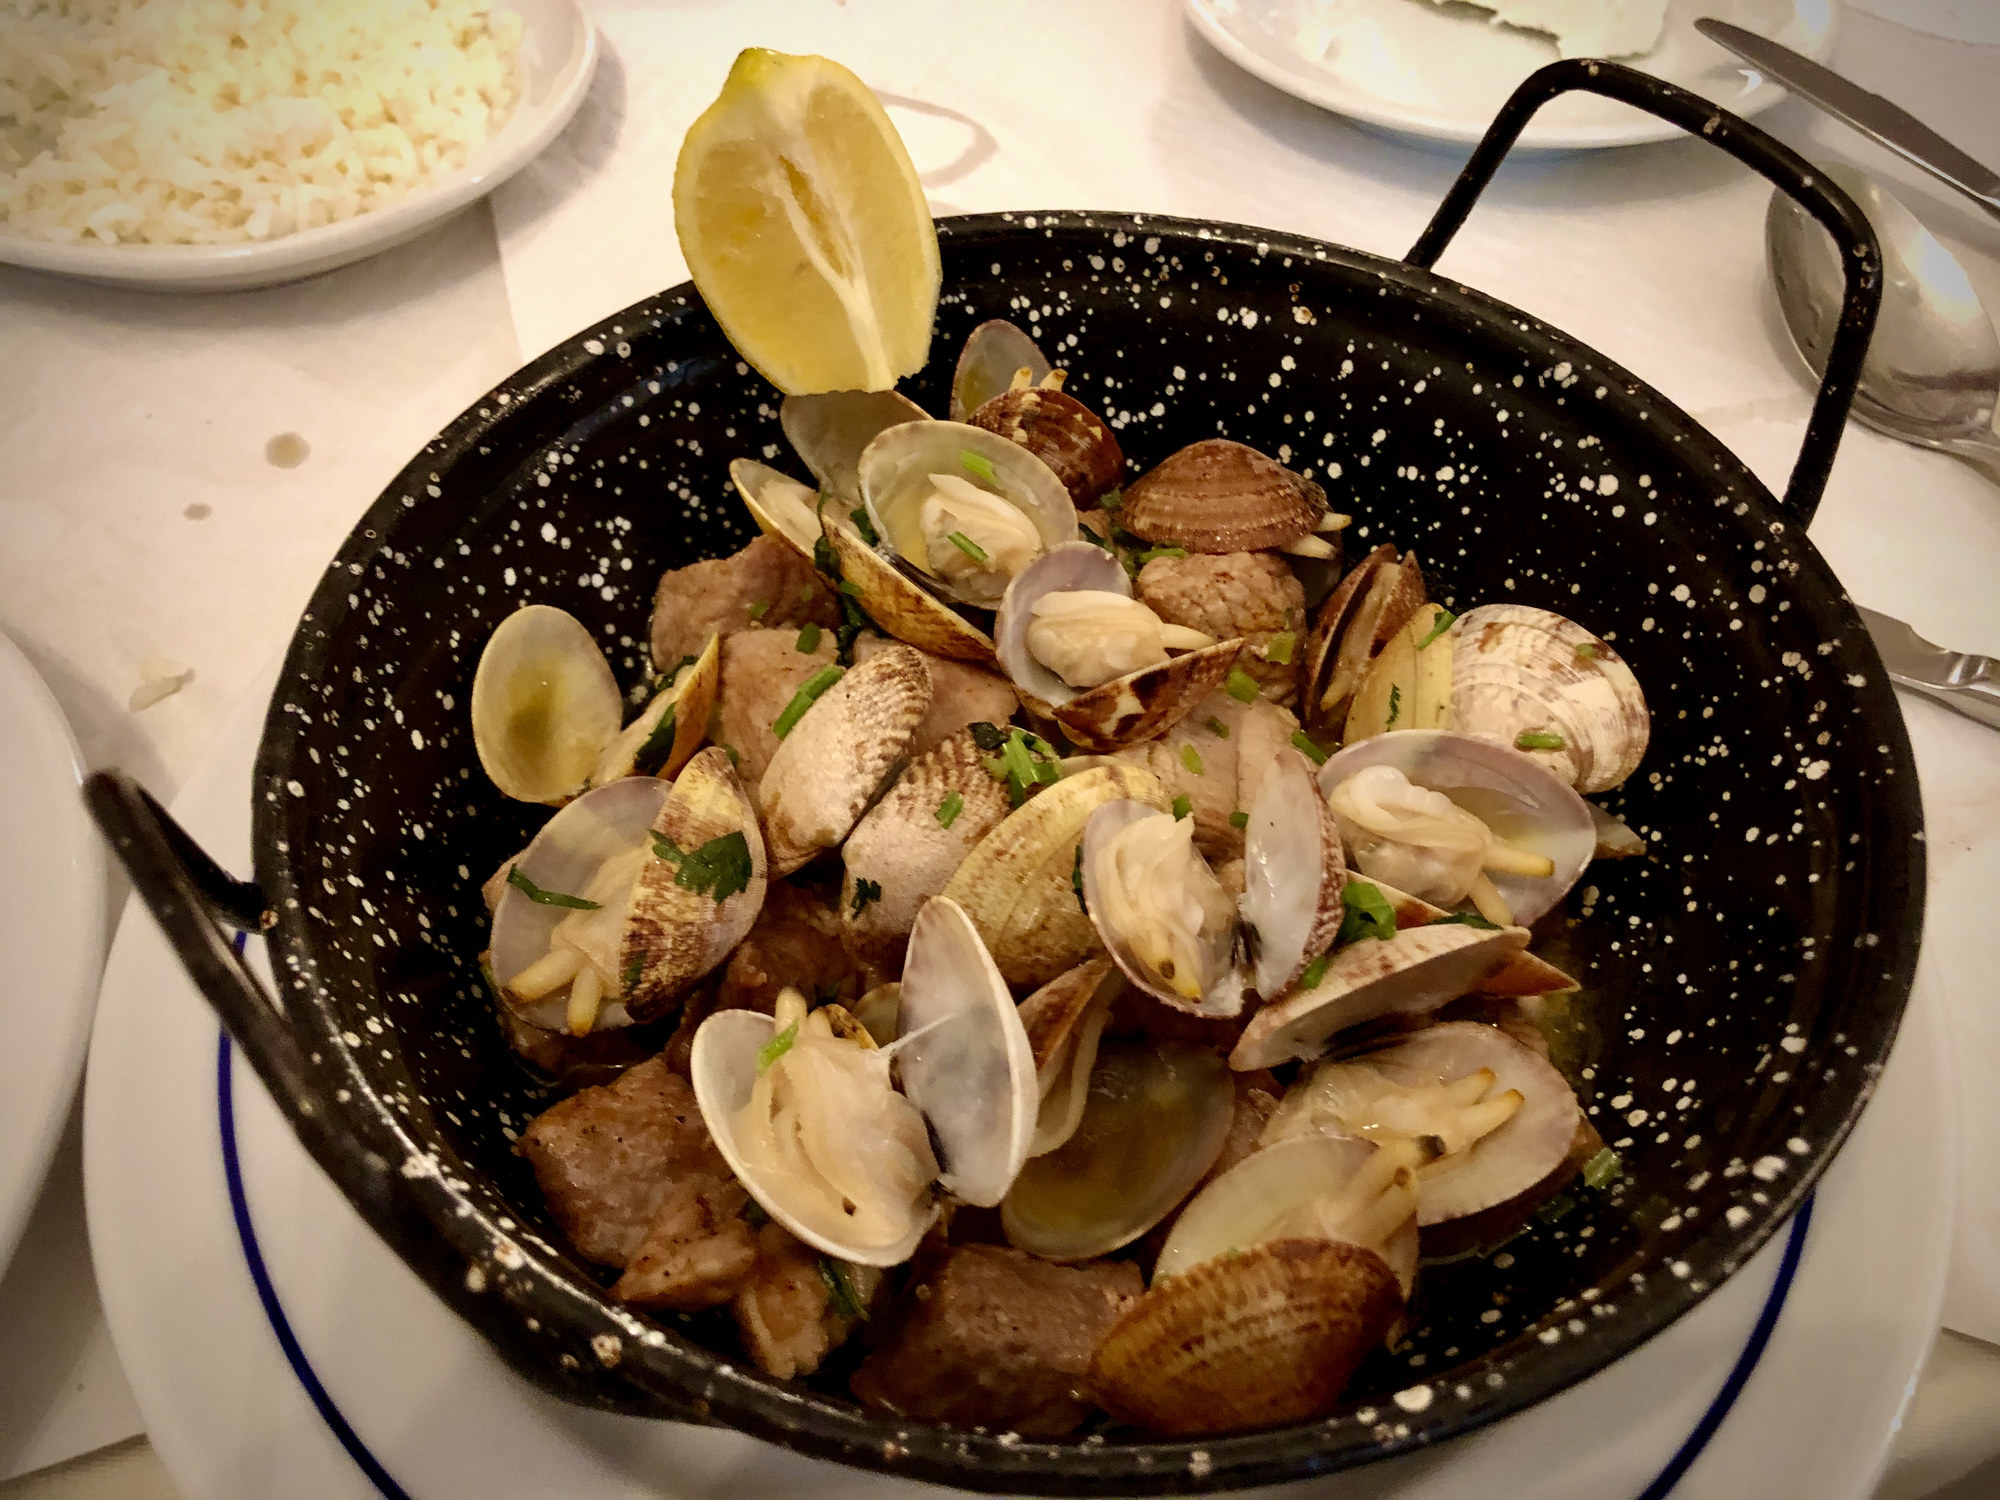 Portuguese pork and clams in a wok.